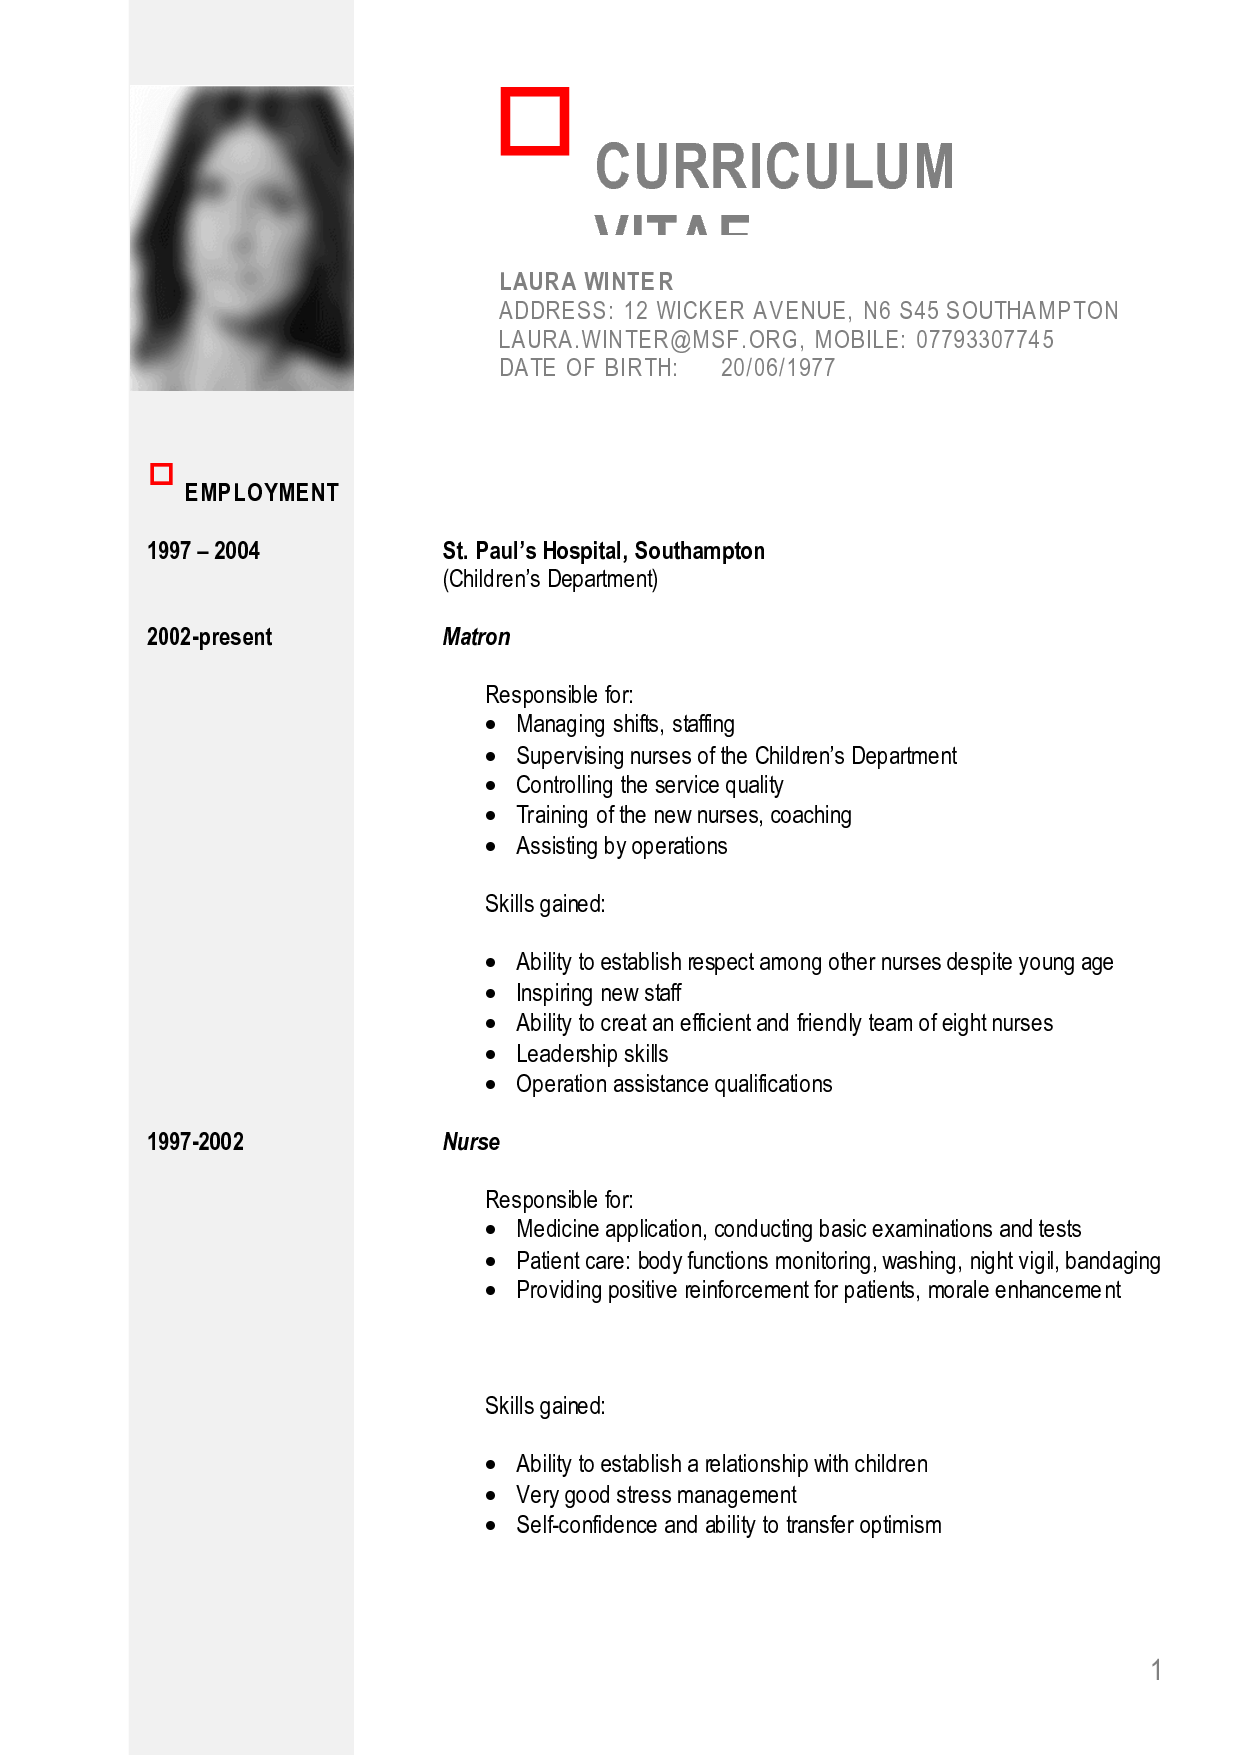 sample curriculum vitae doc professional resume samples for managers